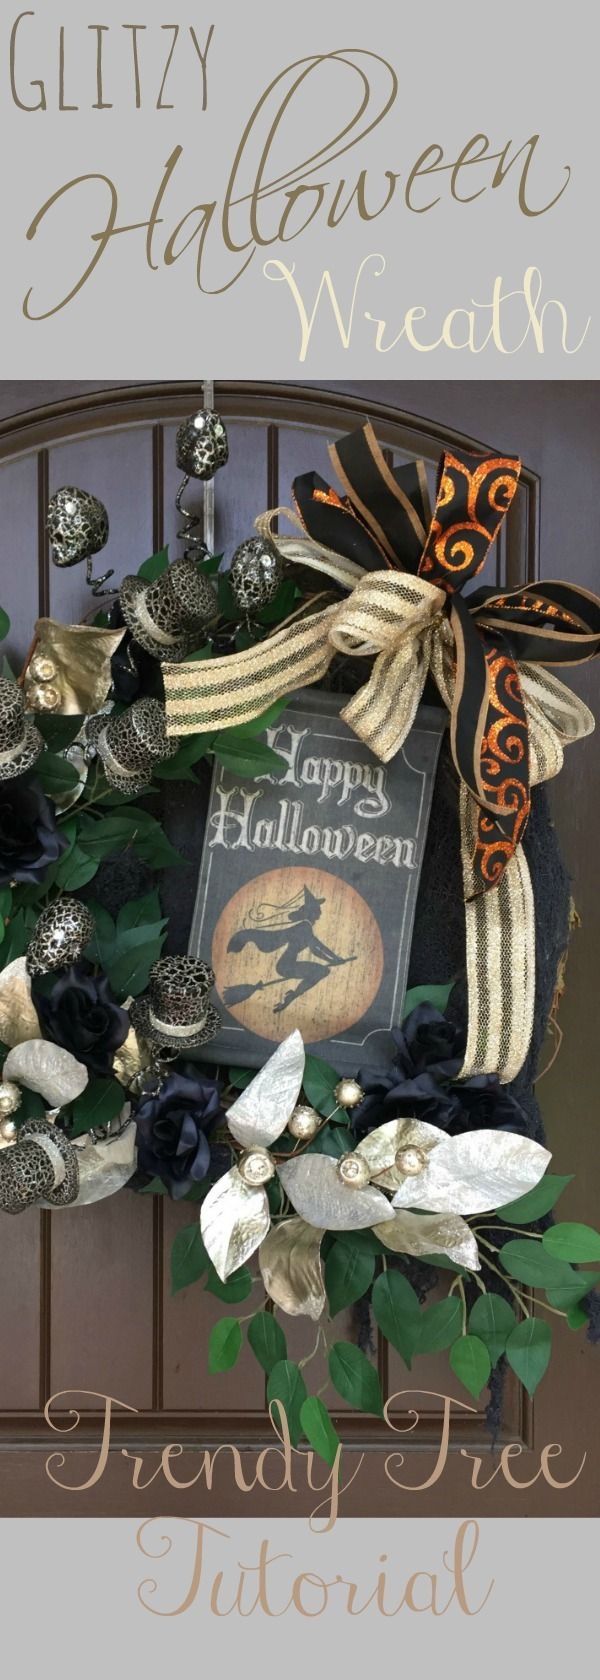 Glitzy Halloween Wreath that Carrie and Rachel put together at Trendy Tree. This wreath is a little something different for Halloween! Supplies Large Round